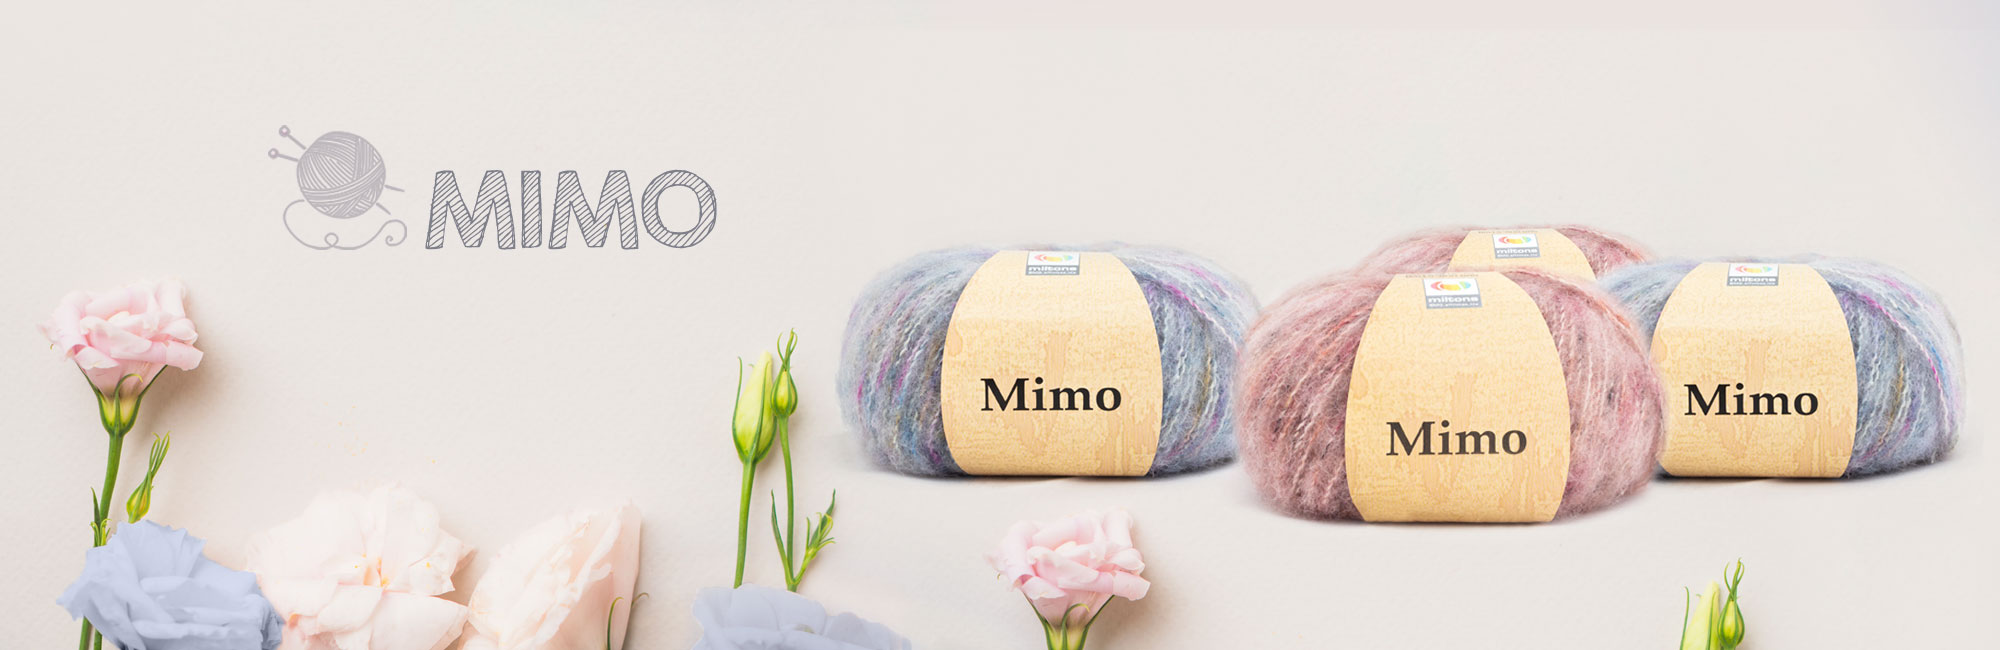 slide_mimo_2000x650px